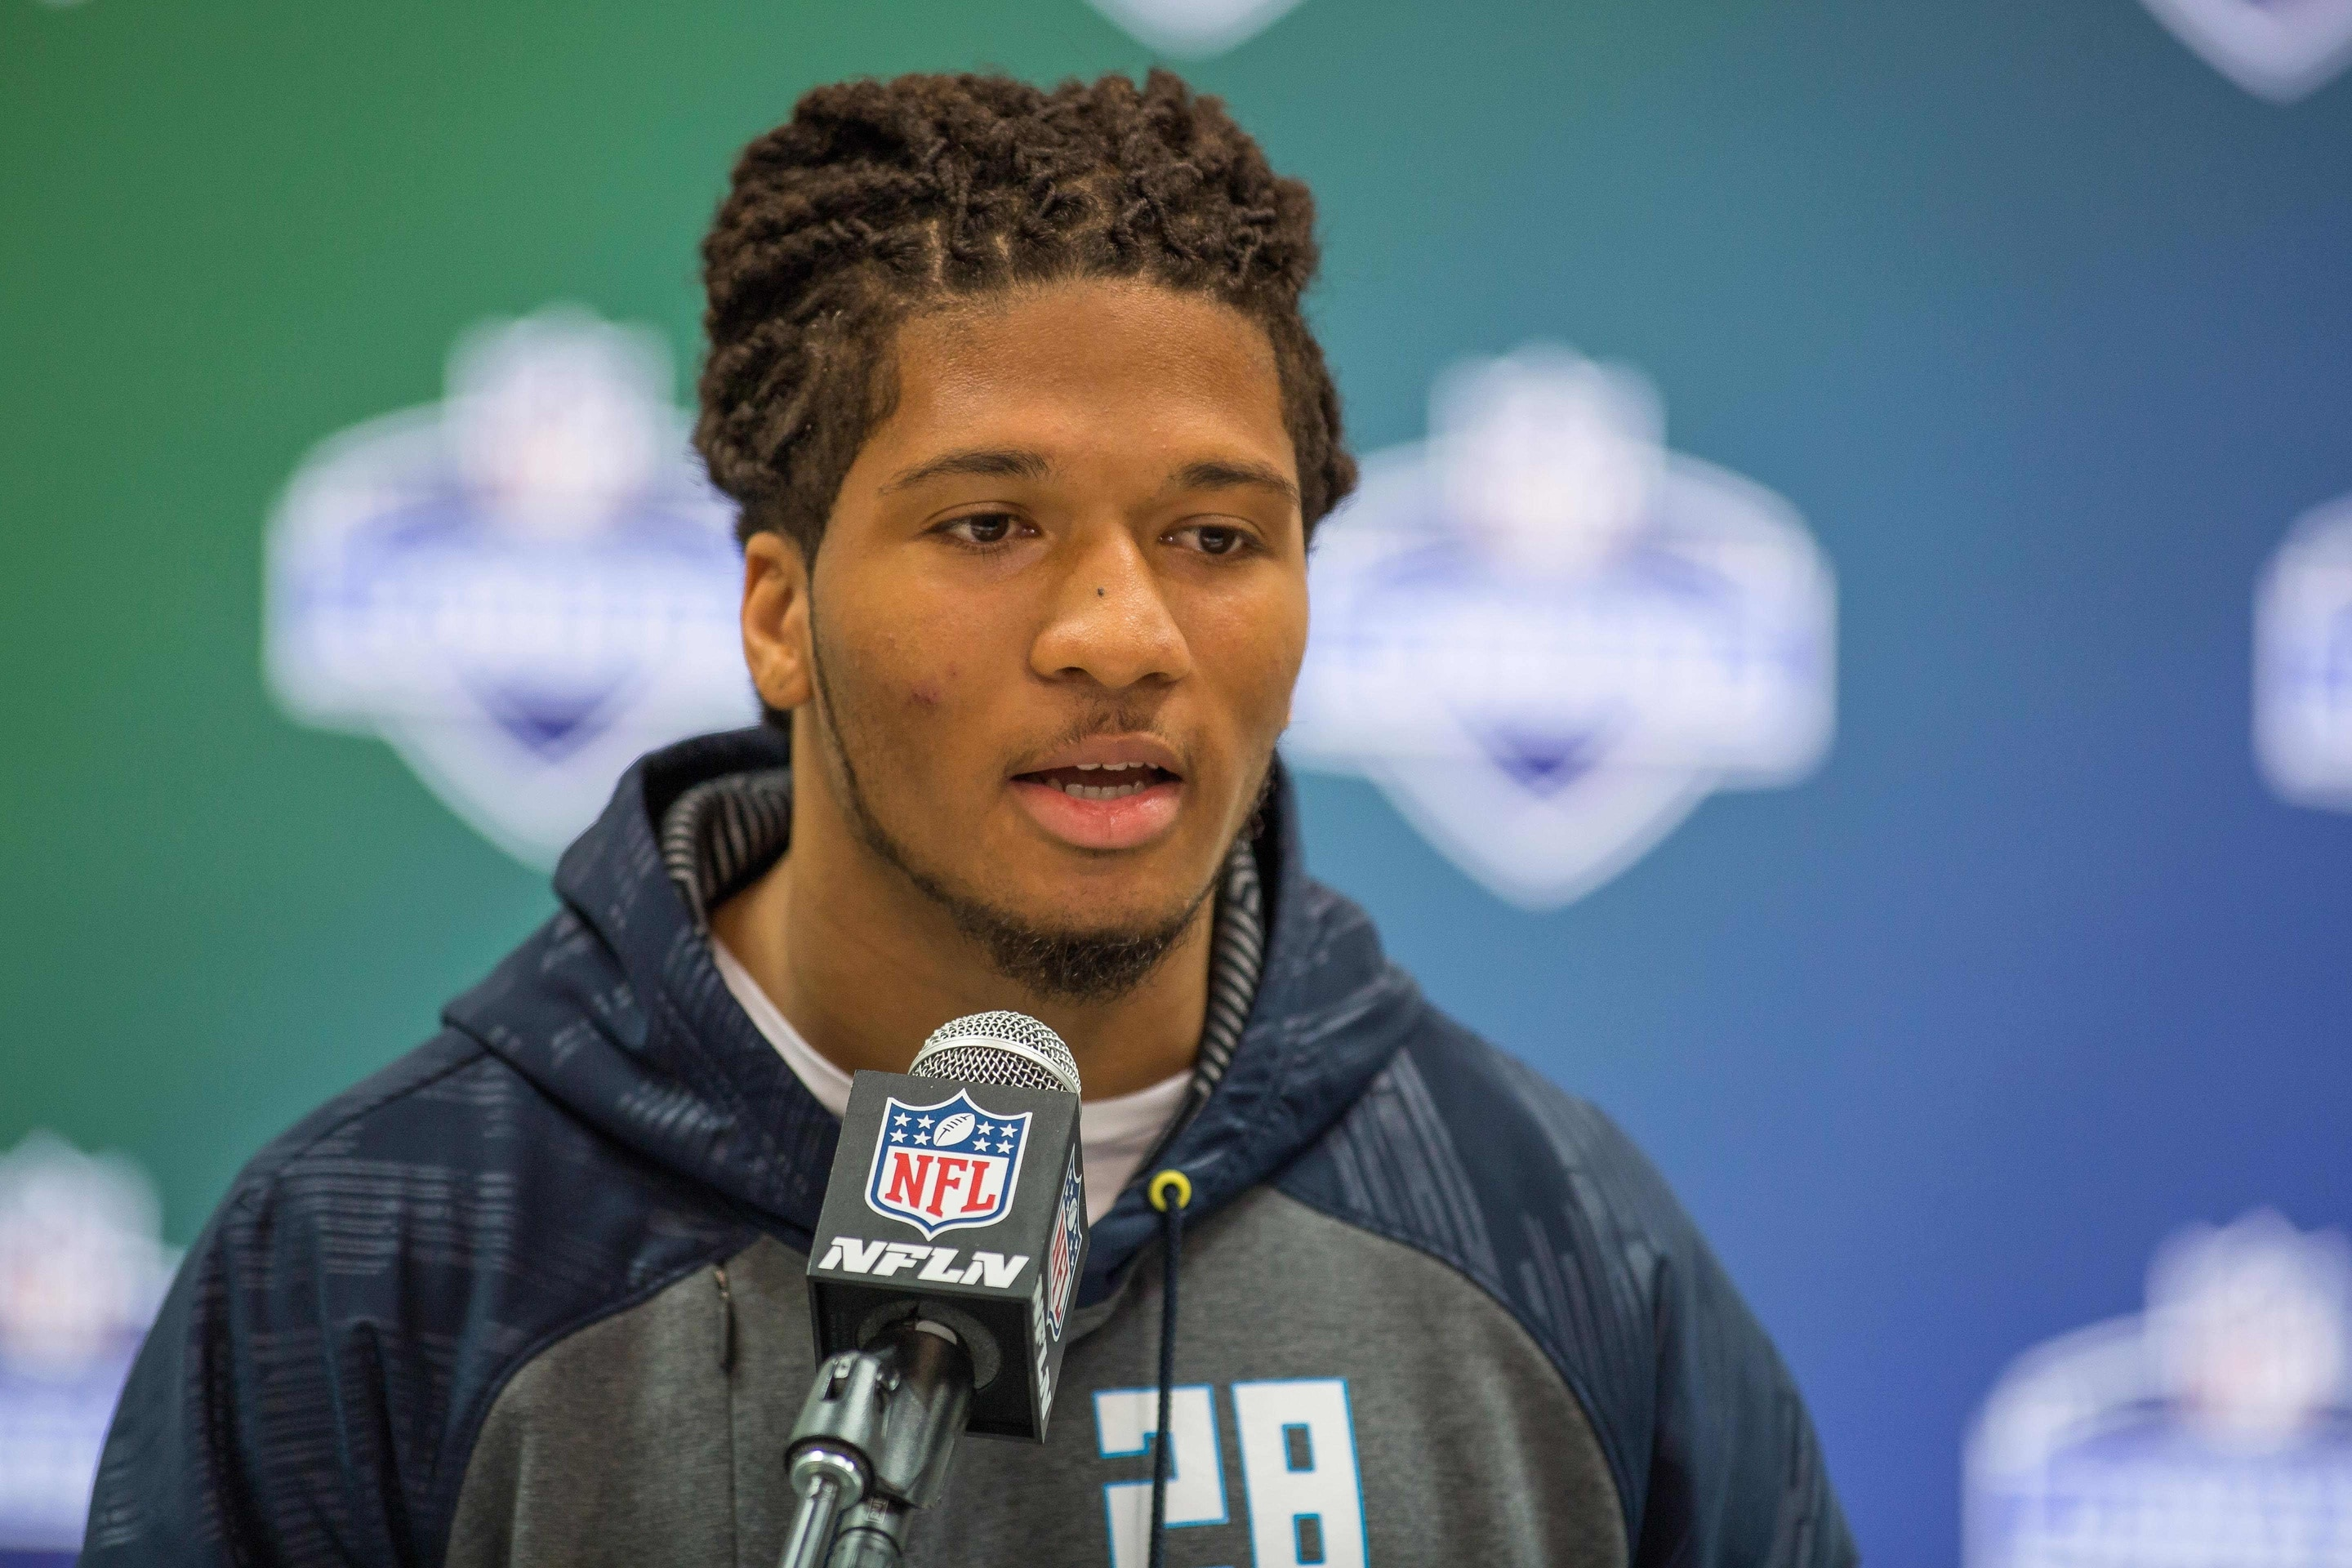 Mar 5, 2017; Indianapolis, IN, USA; Washington Huskies defensive back Sidney Jones speaks to the media during the 2017 combine at Indiana Convention Center. Mandatory Credit: Trevor Ruszkowski-USA TODAY Sports